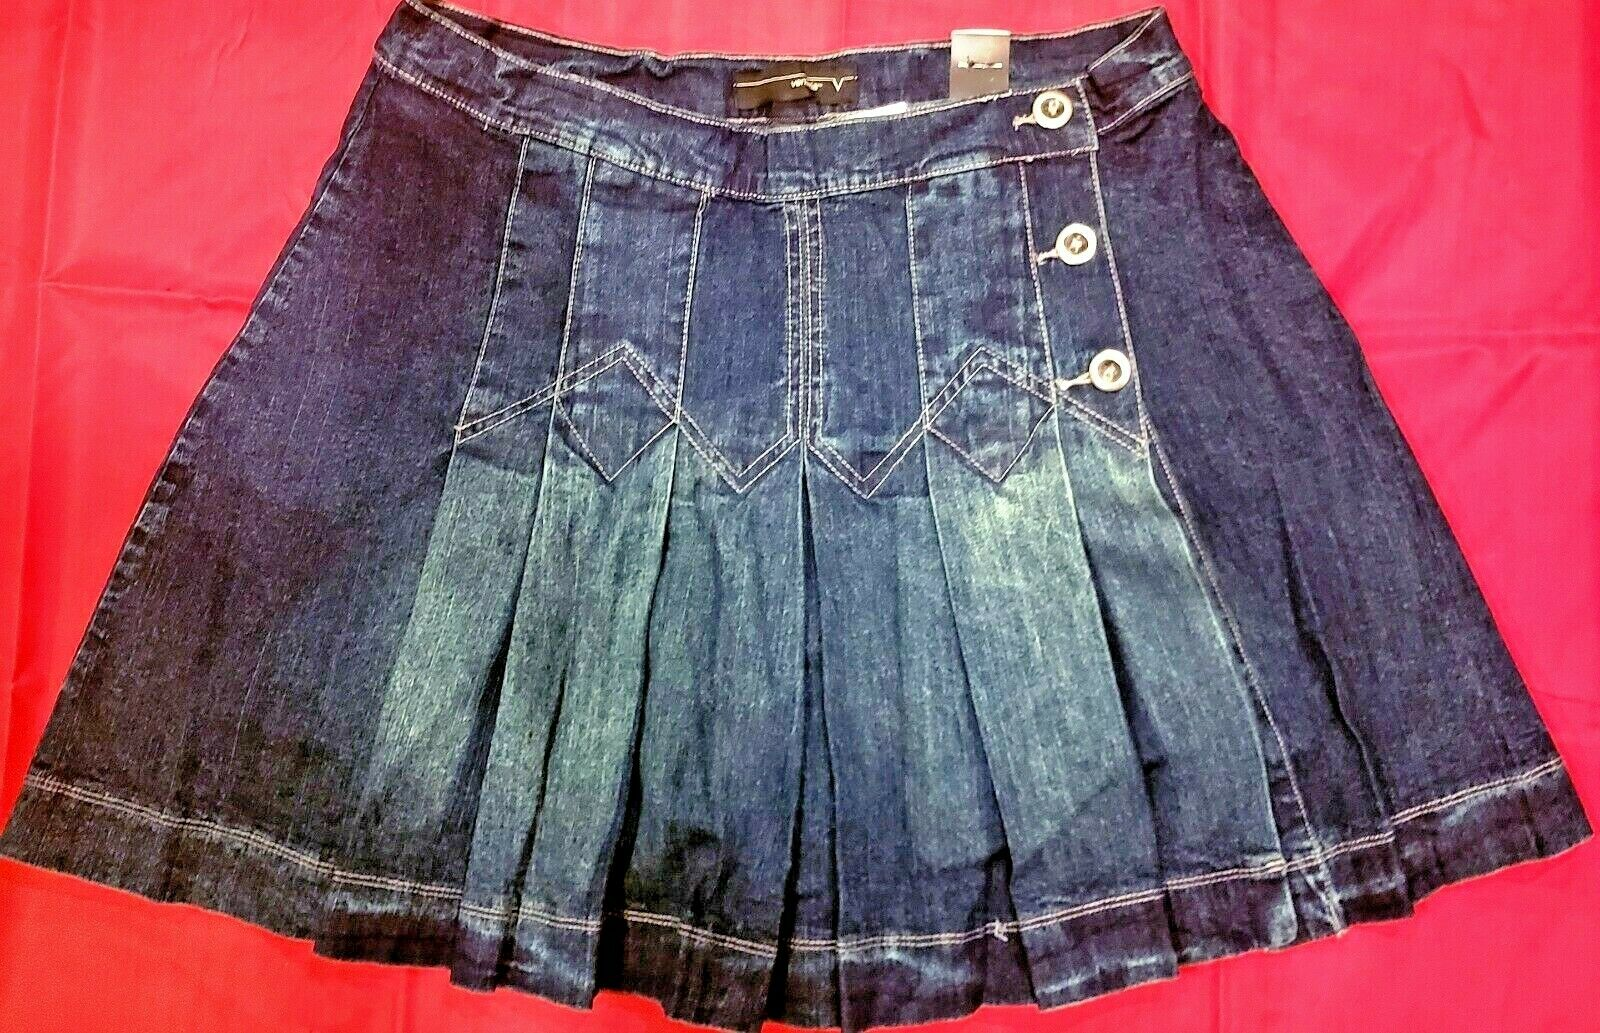 Venezia by Lane Bryant Pleated Jeans Skirt with Shorts Underneath- Size 18